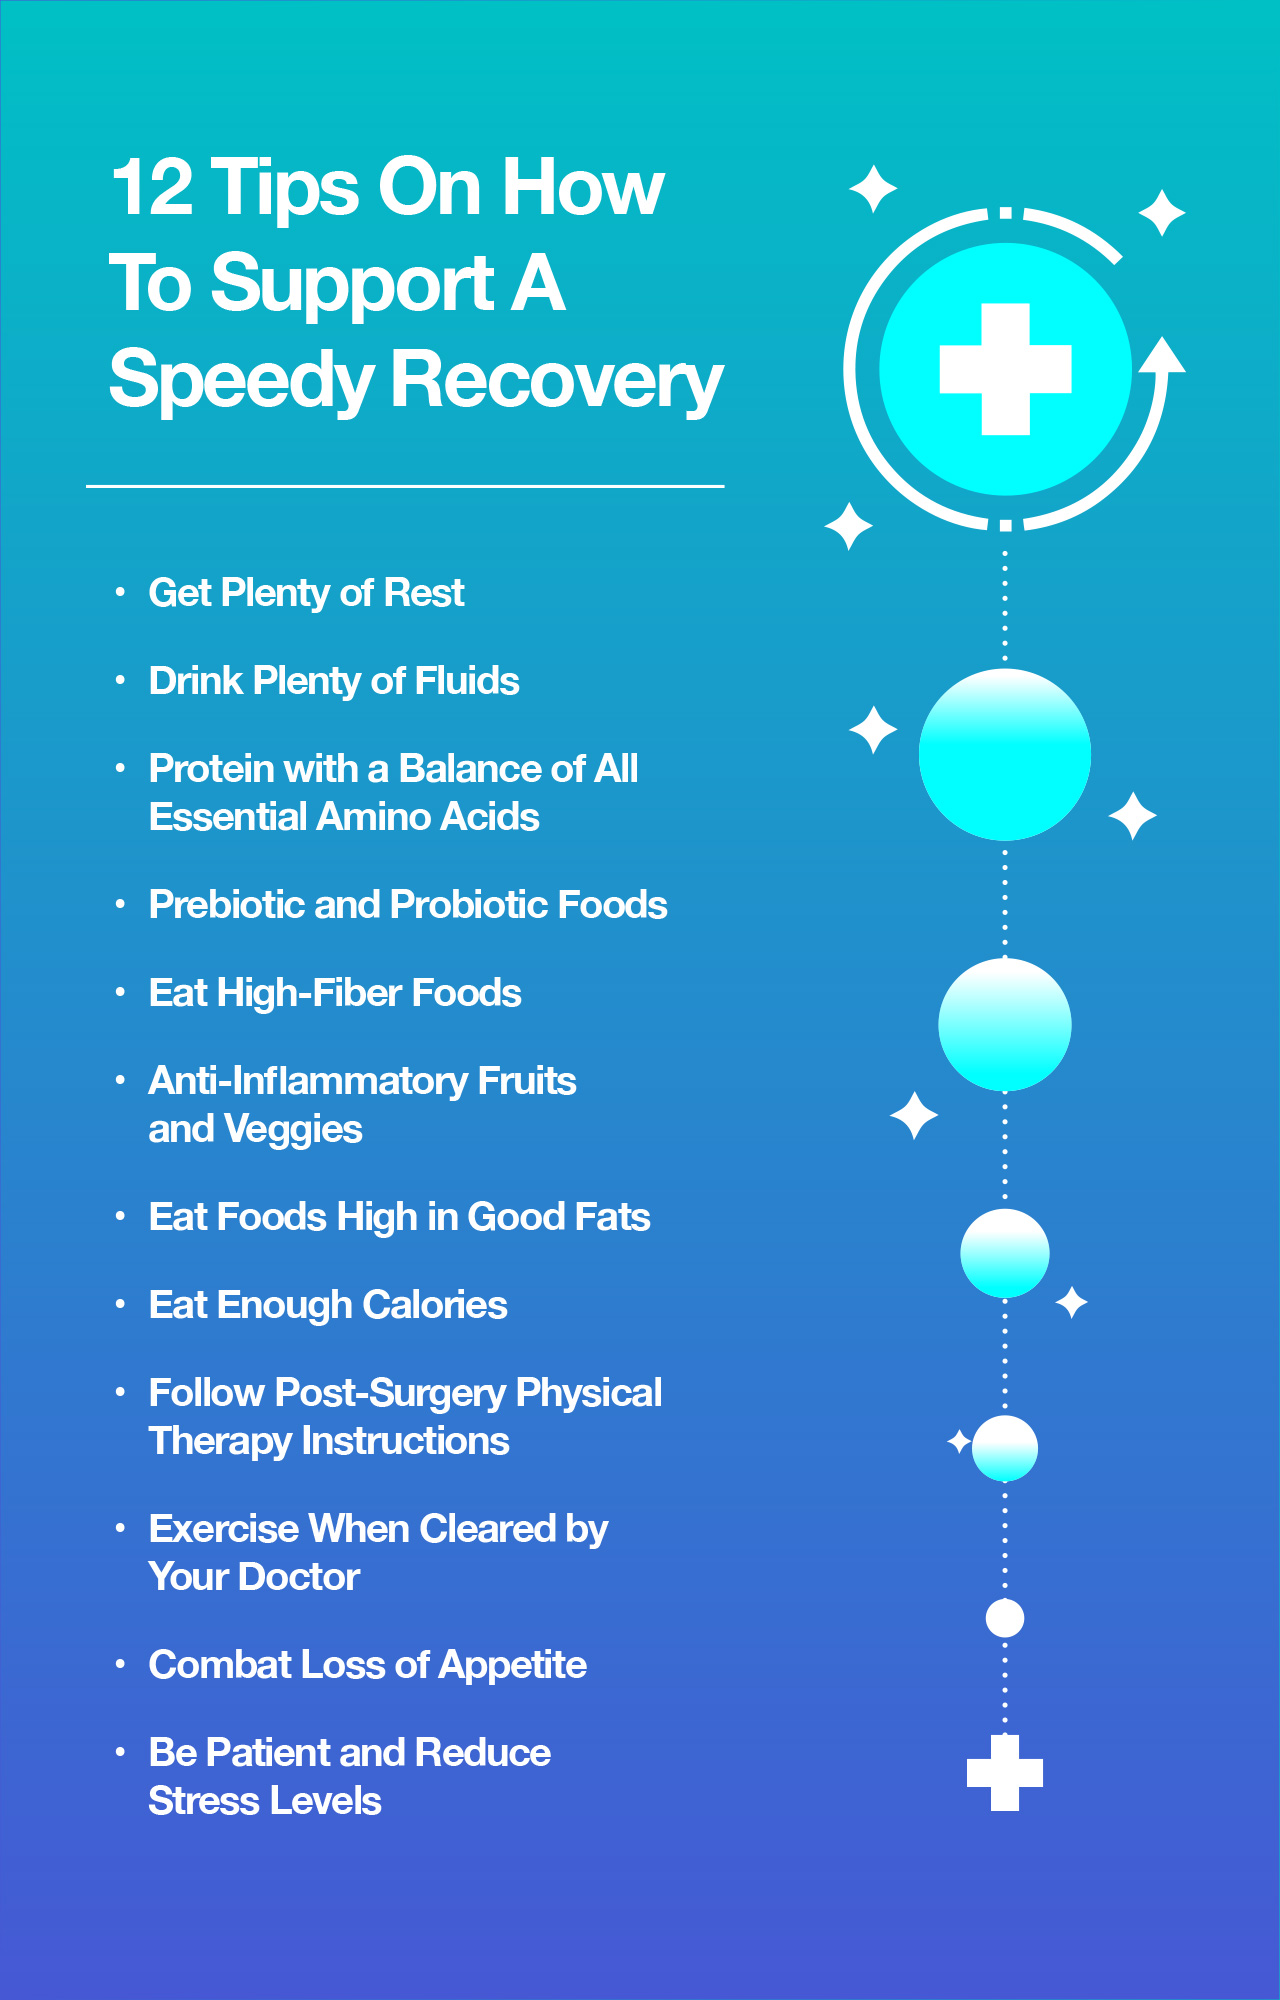 12 Tips On How To Support A Speedy Recovery